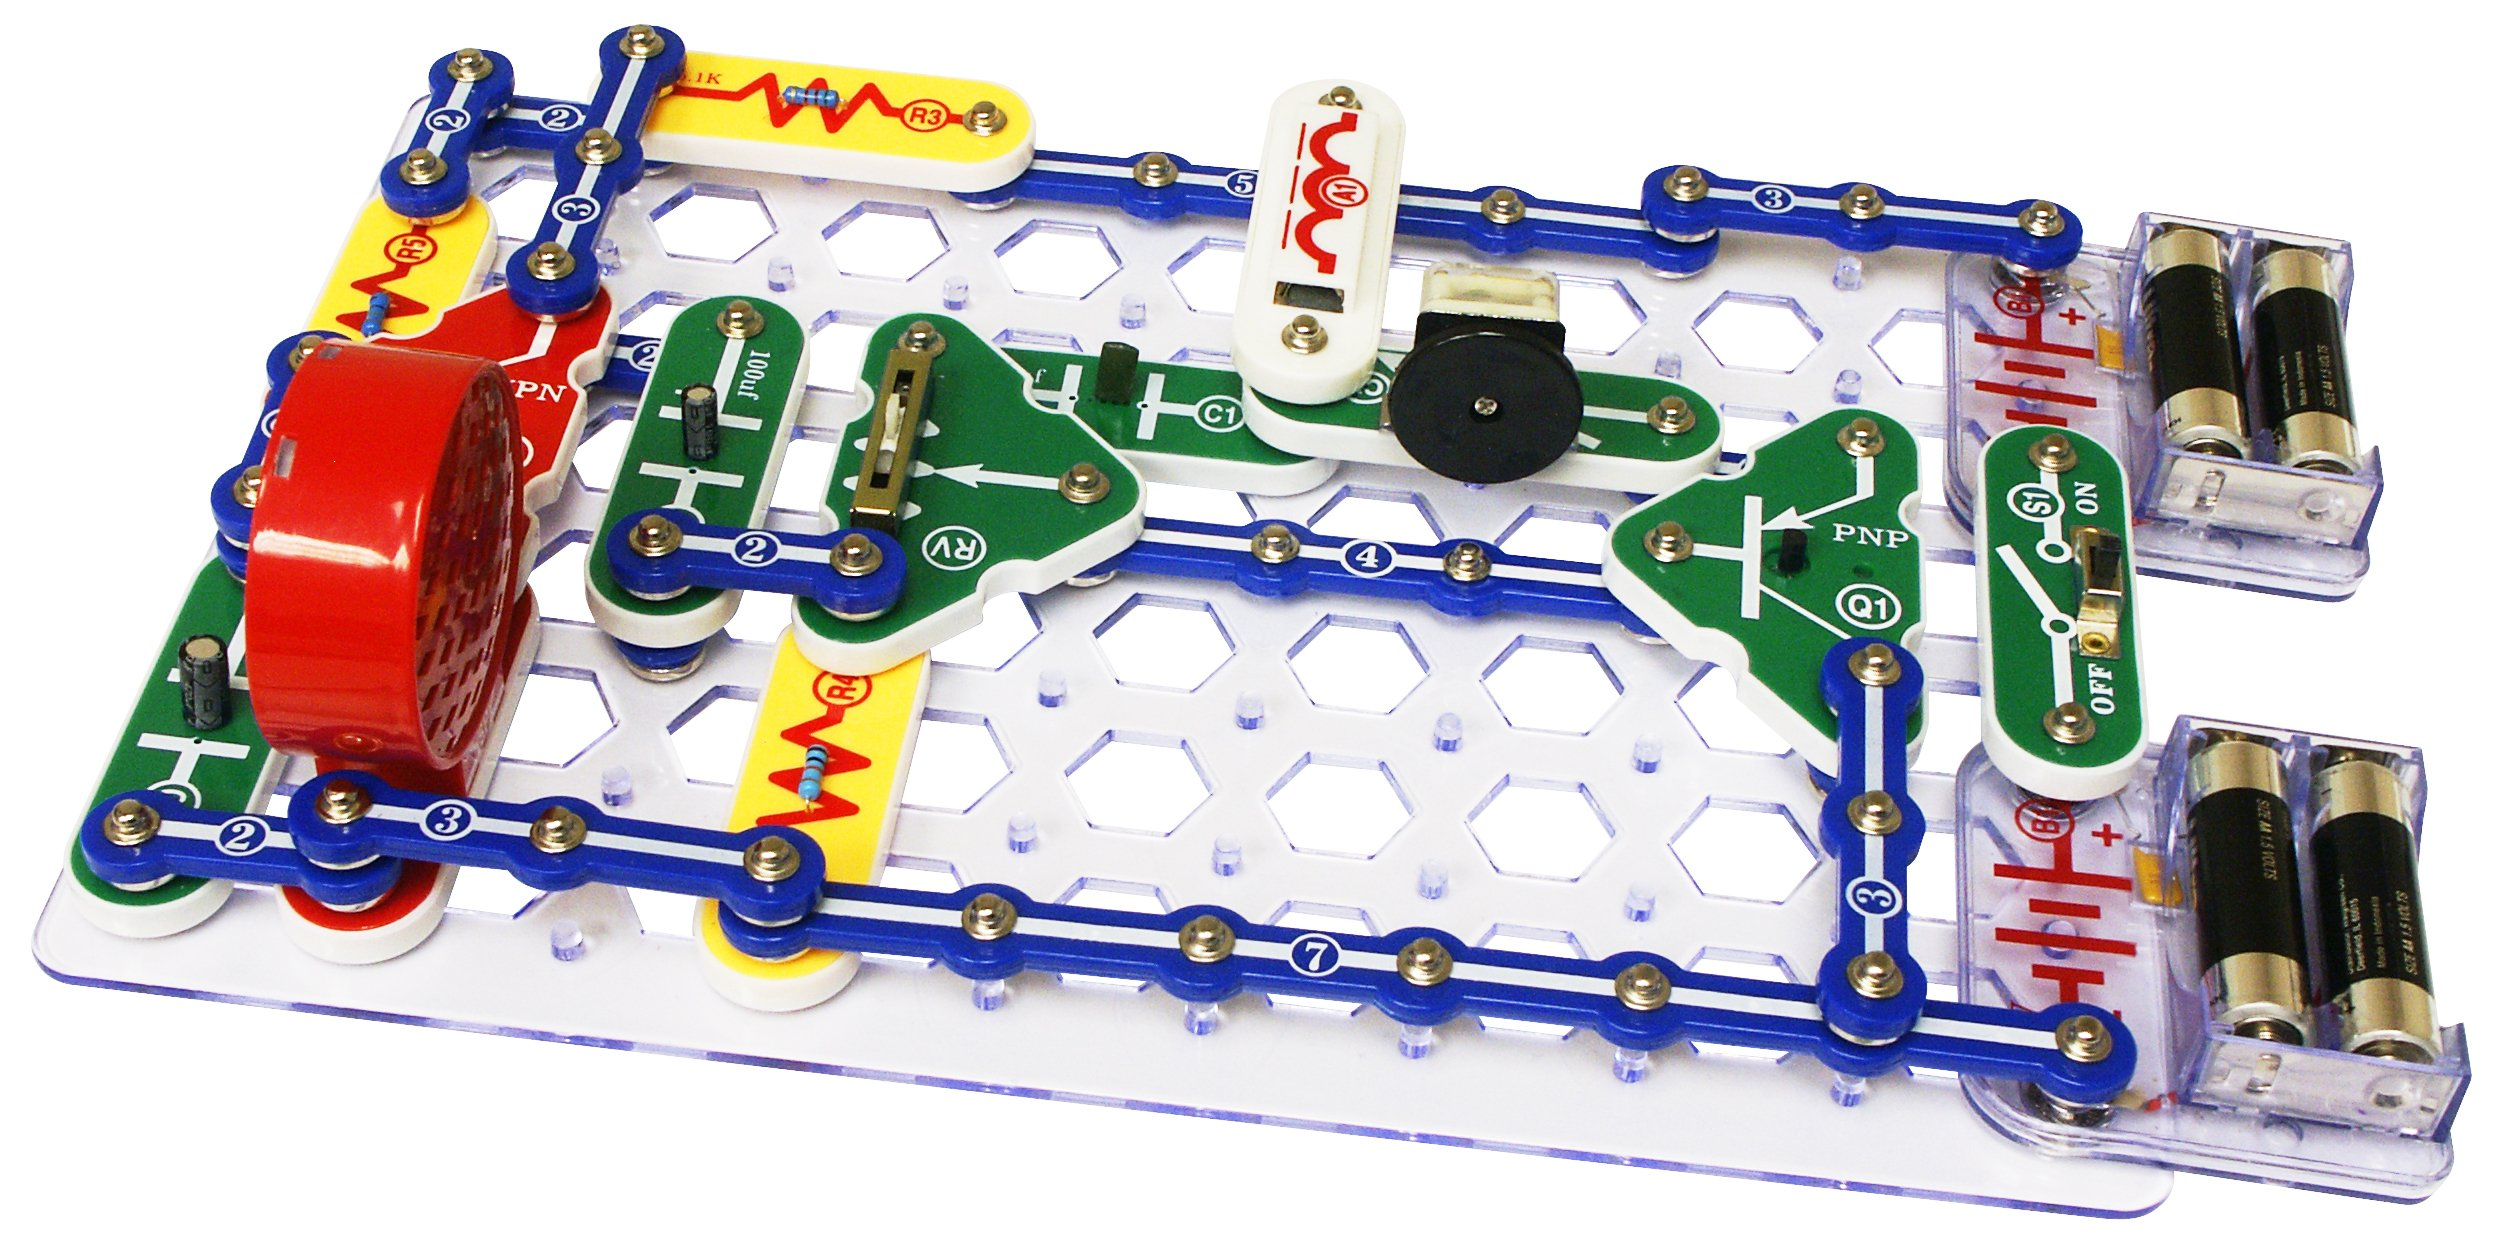 Snap Circuits Classic SC-300 Electronics Exploration Kit | Over 300 STEM Projects | 4-Color Project Manual | 60 Snap Modules | Unlimited Fun by Snap Circuits (Image #5)